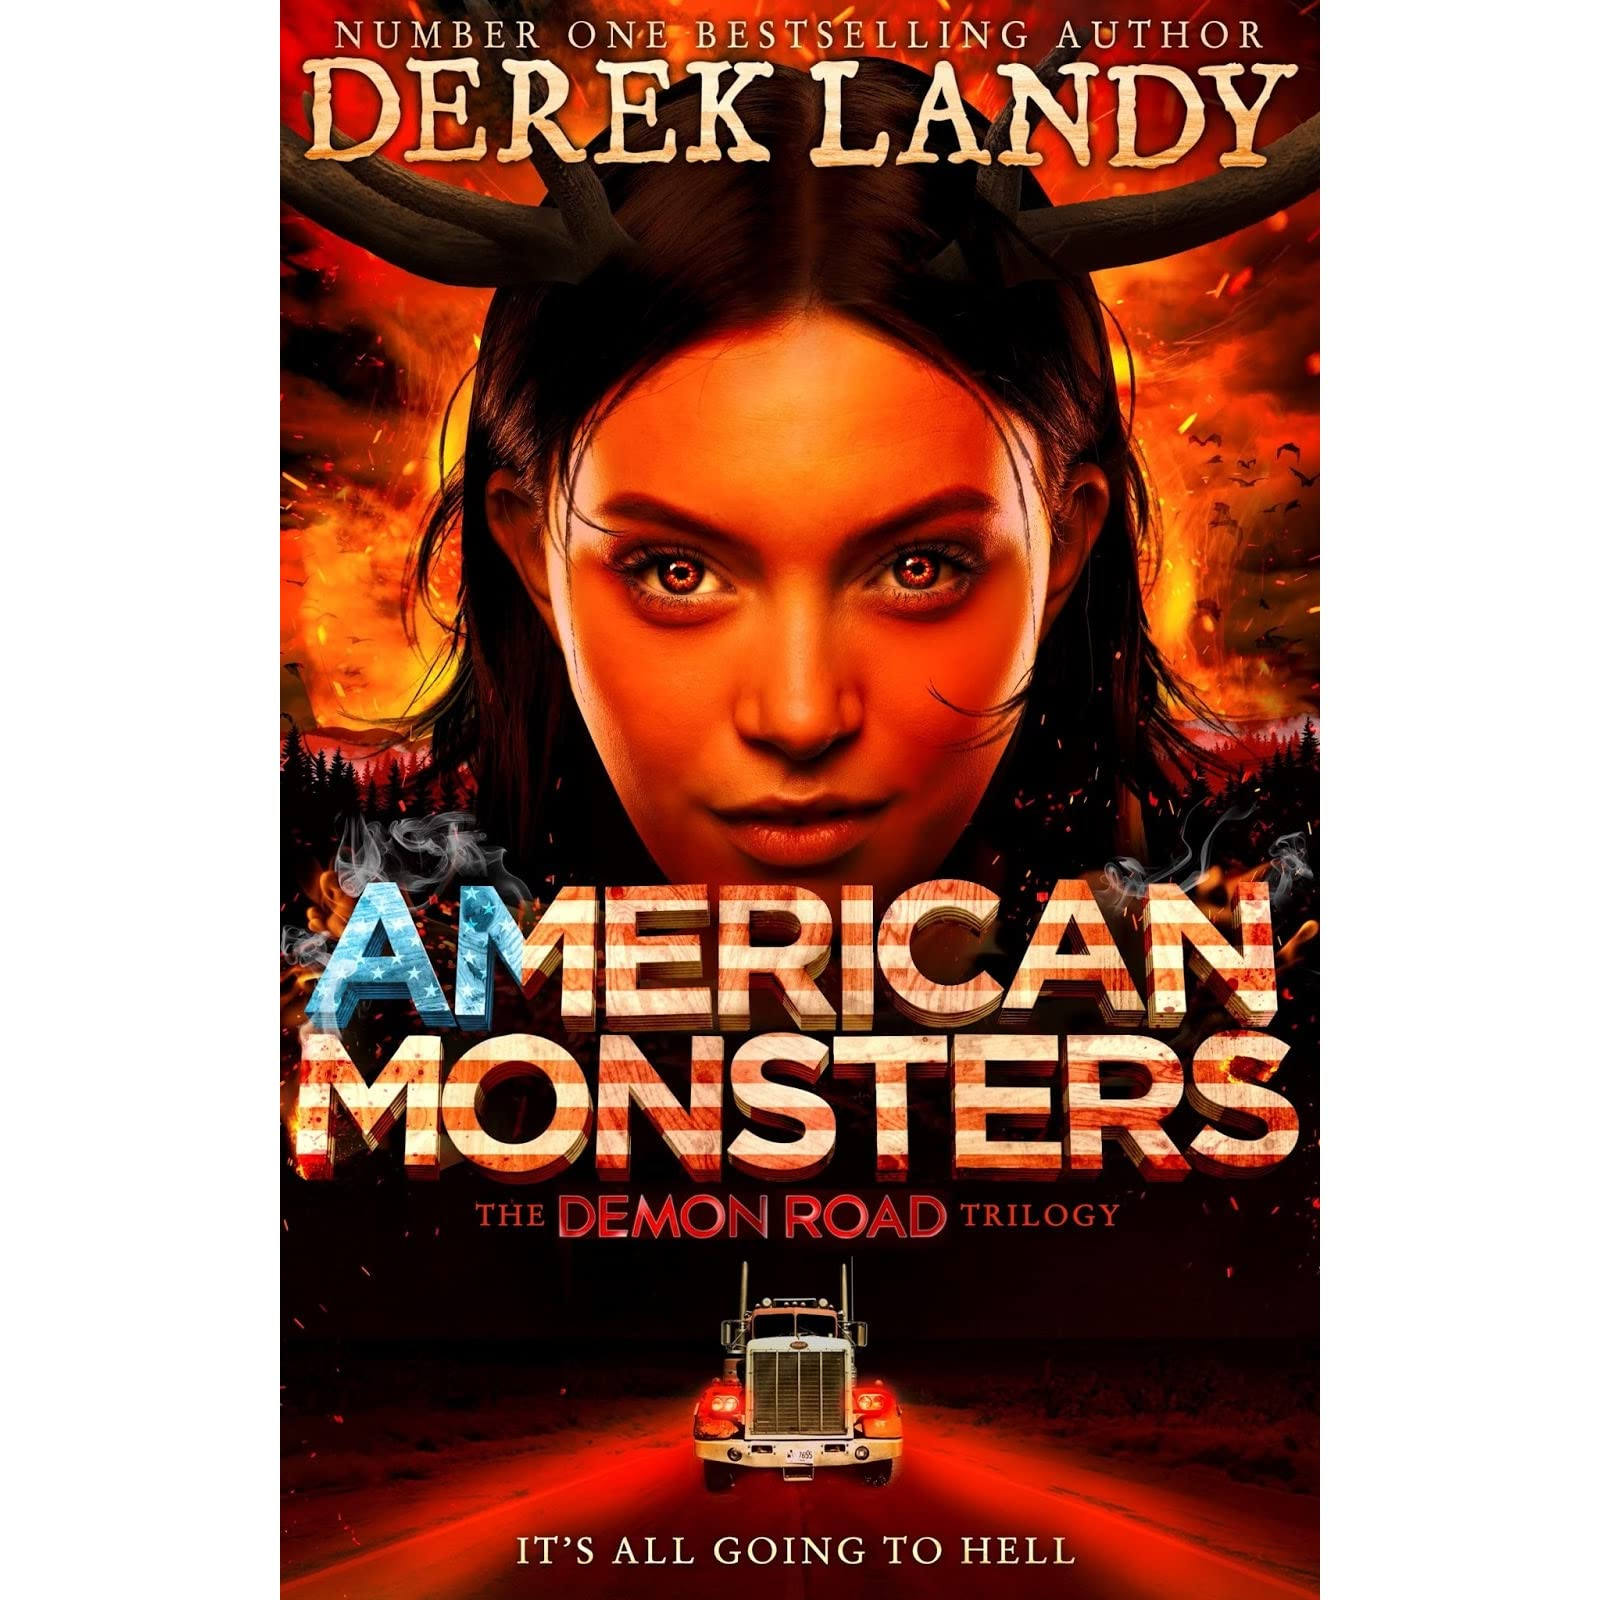 American Monsters (Demon Road, #3) - Derek Landy